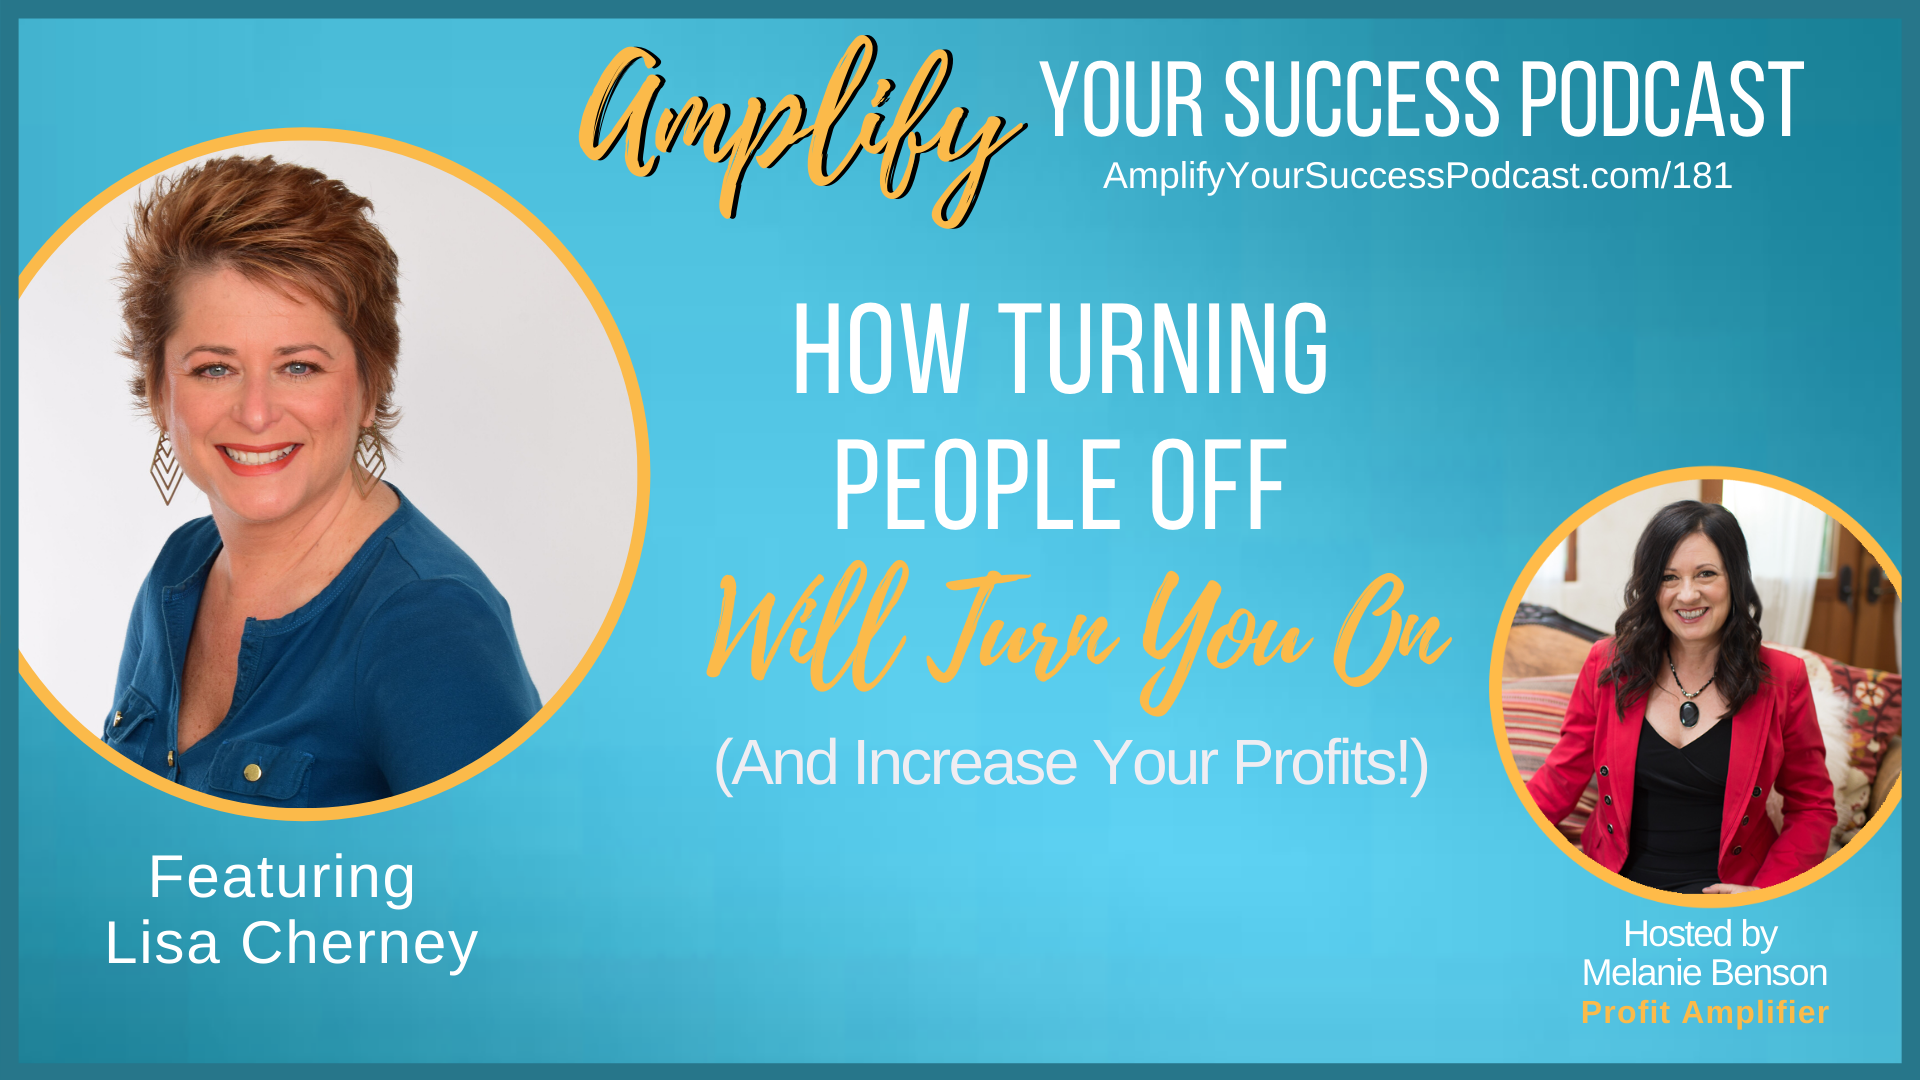 How Turning People Off Will Turn You On (And Increase Profit) with Lisa Cherney on Amplify Your Success Podcast Episode 181 with Melanie Benson